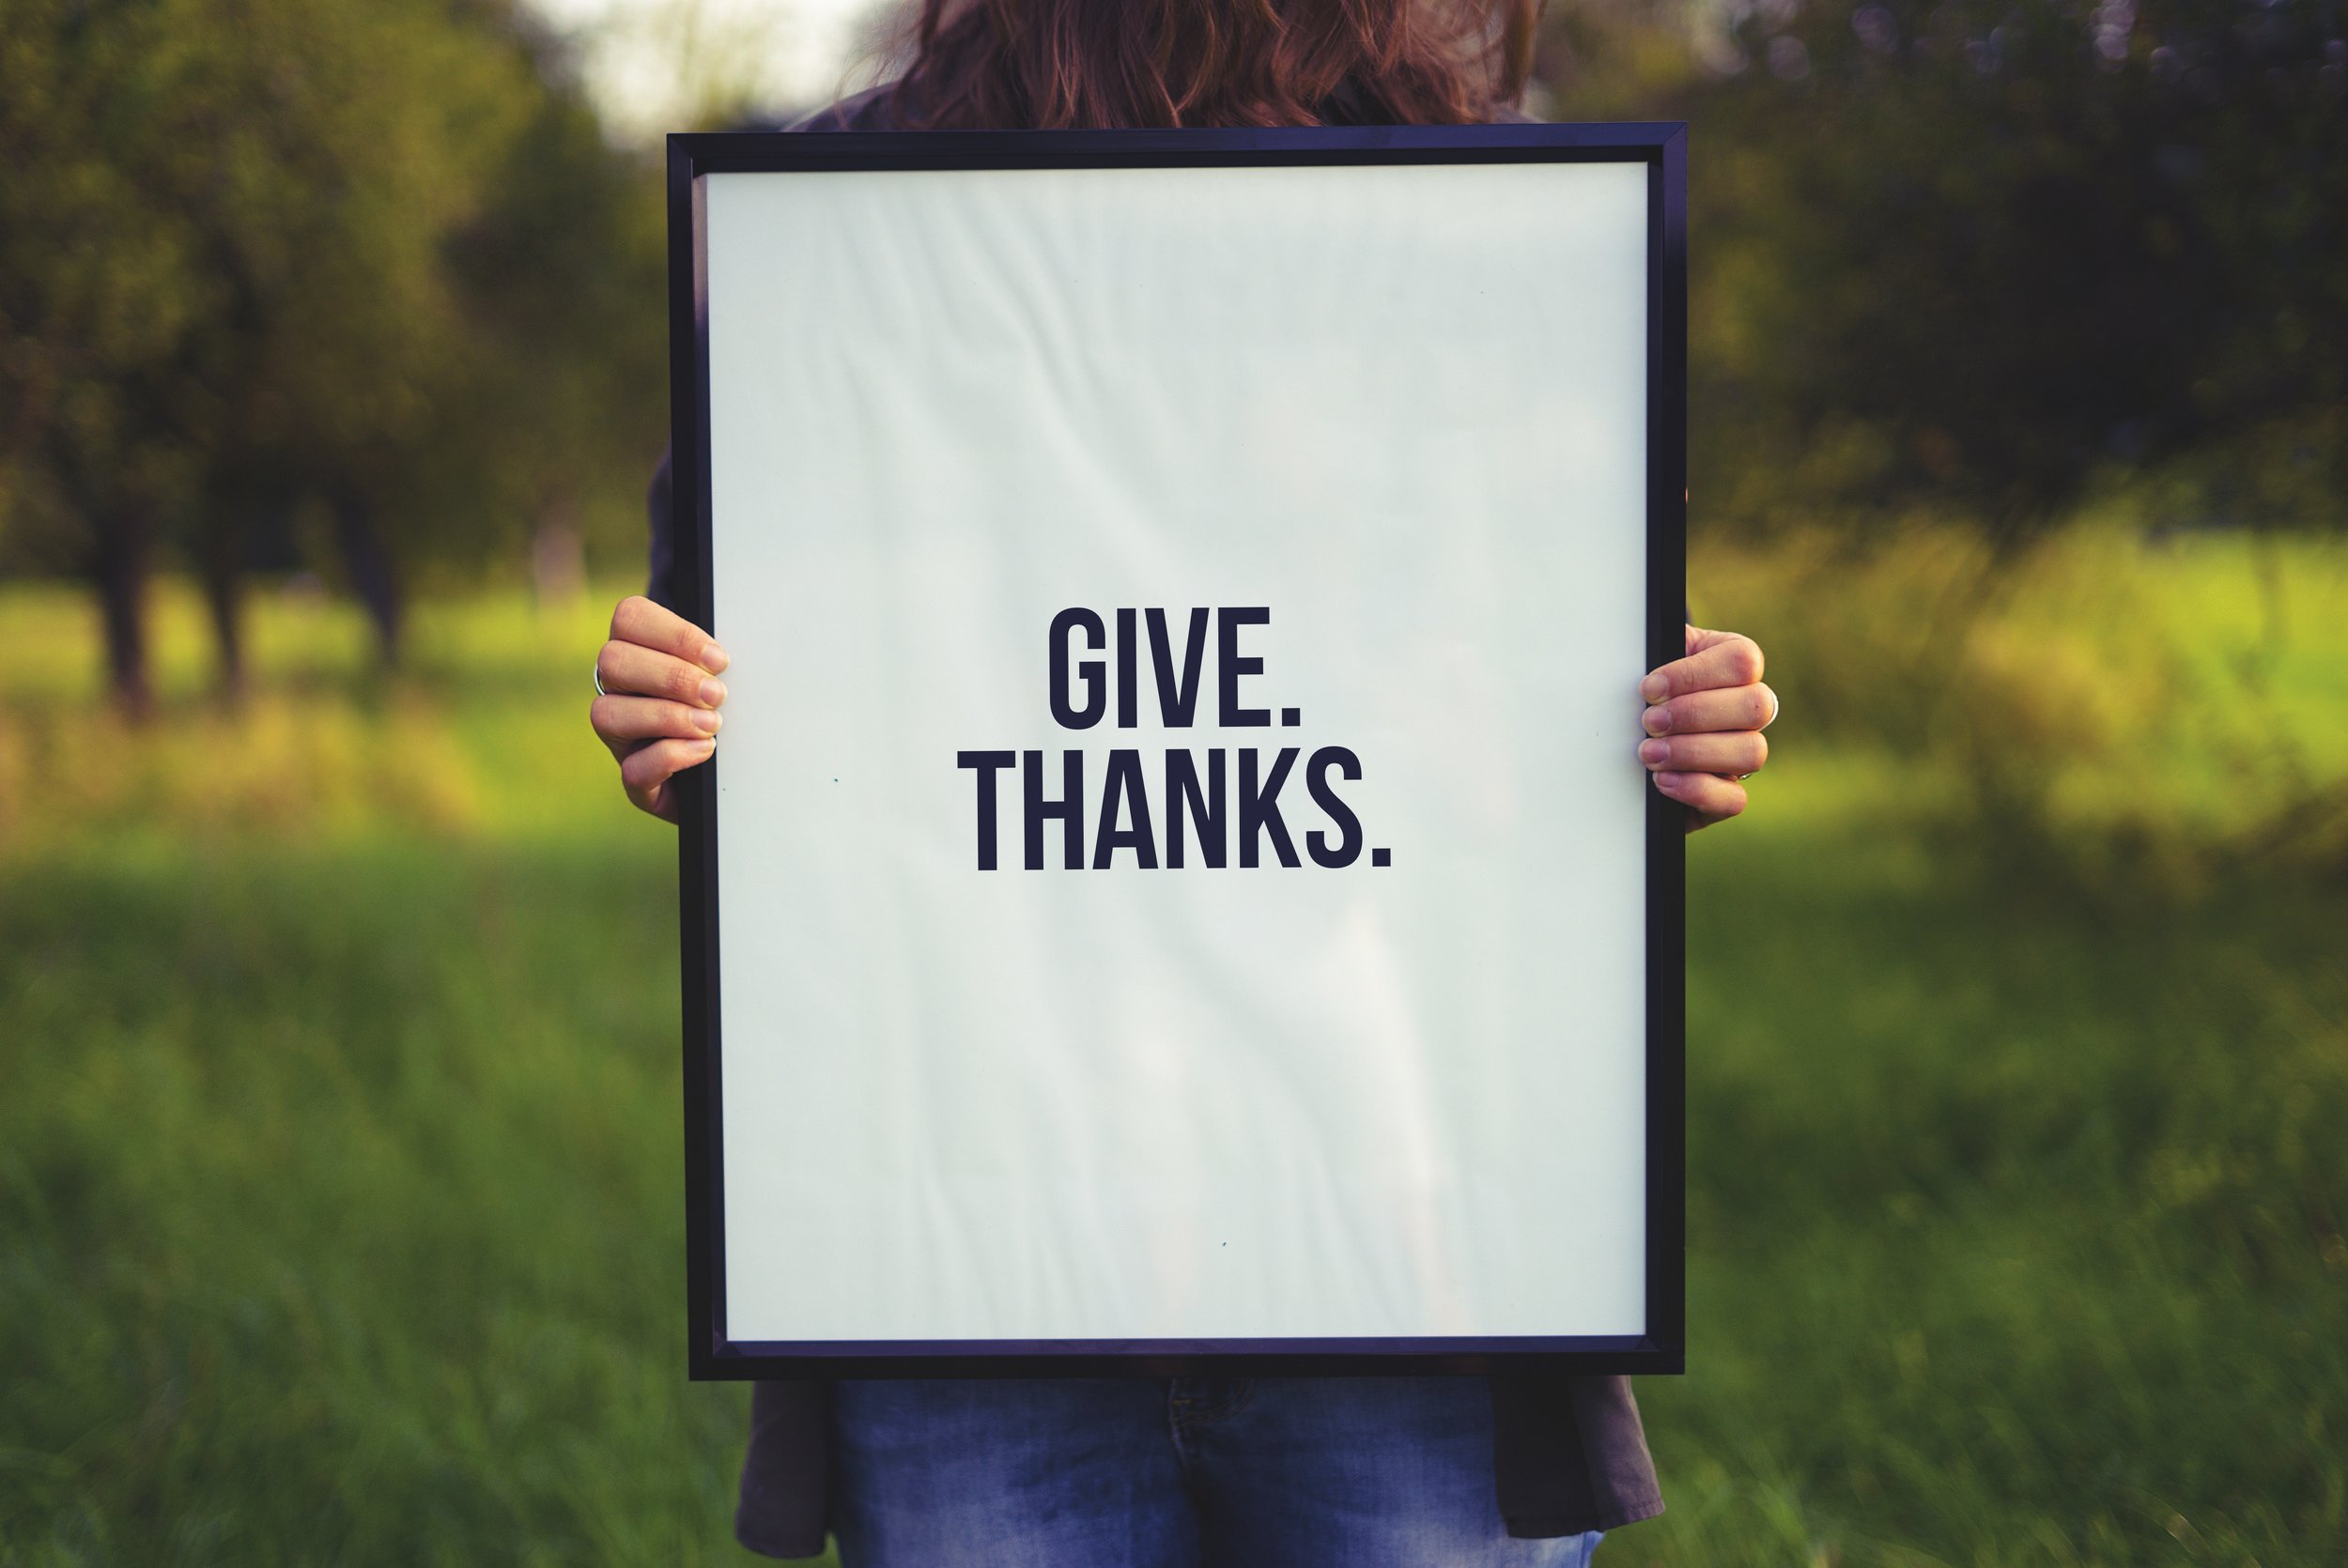 About - Whether illness, job loss, or other circumstances have made someone's Thanksgiving less than ideal, we prepare a full meal and you deliver it it to those in need.